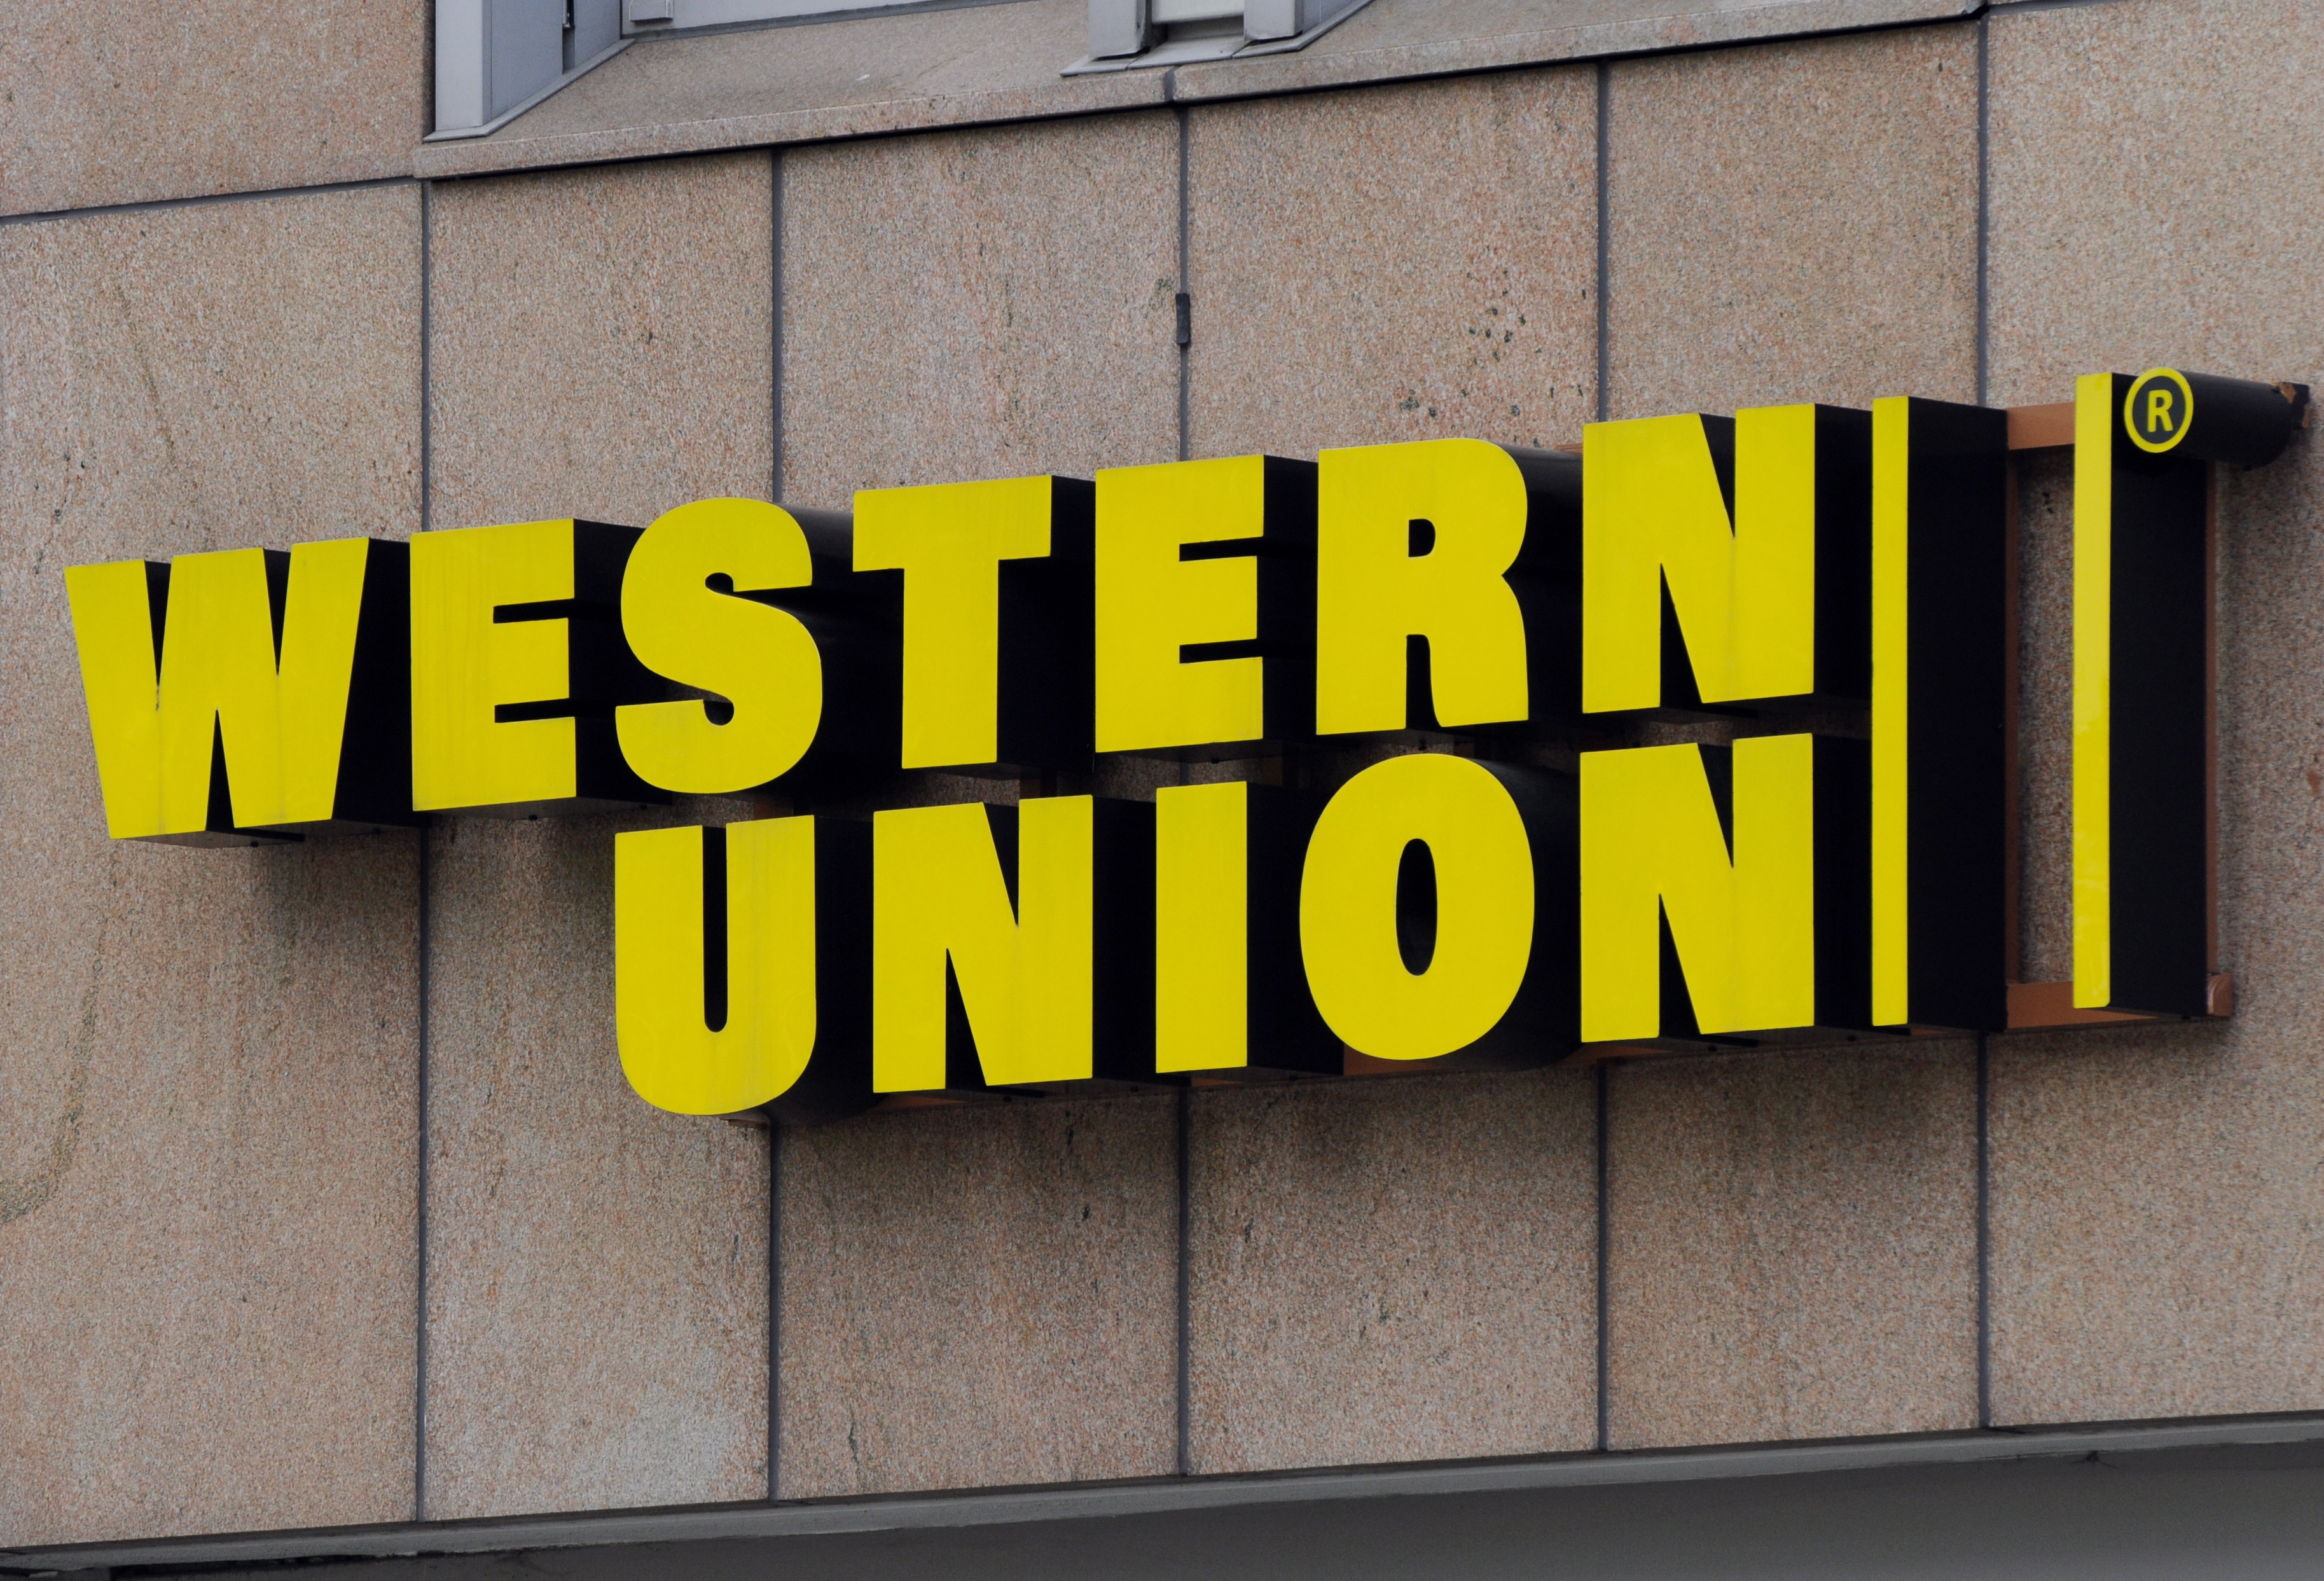 Western union - An Image Showing The Company Logo Of Western Union In Frankfurt